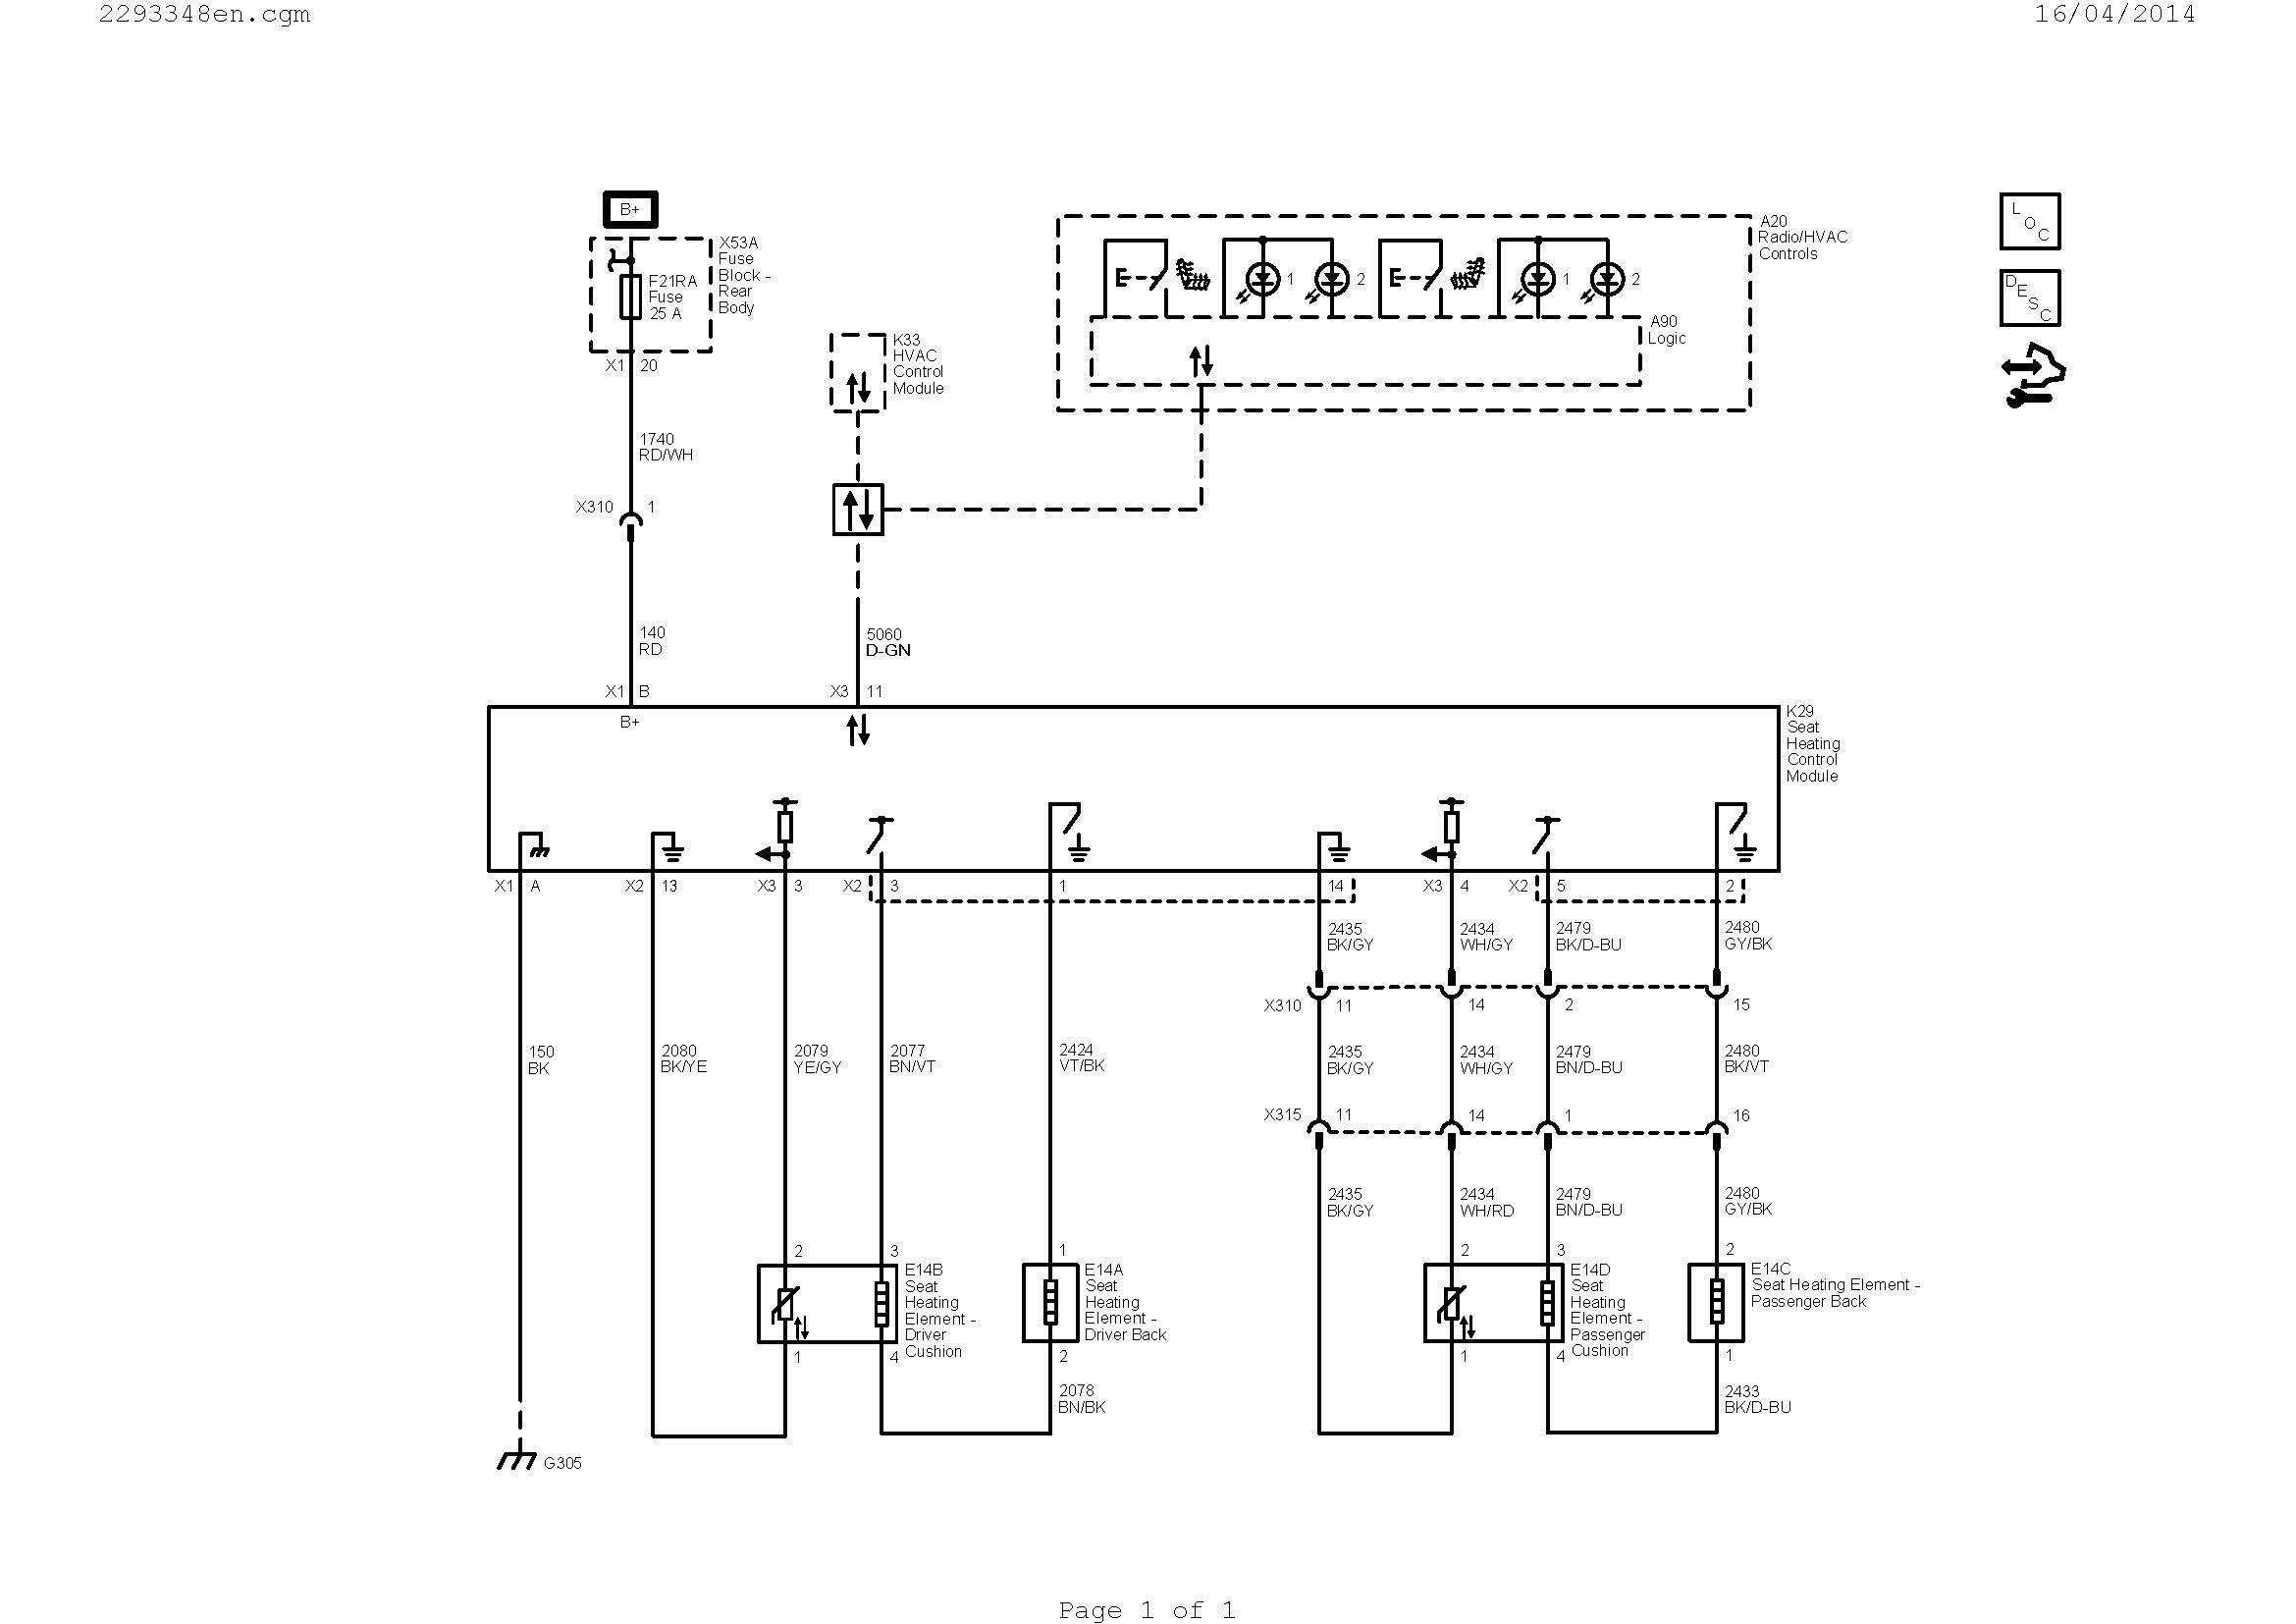 electric trailer jack wiring diagram Download-Wiring Diagram for Electric Trailer Jack Save New Wiring Diagram Rv Trailer 9-b